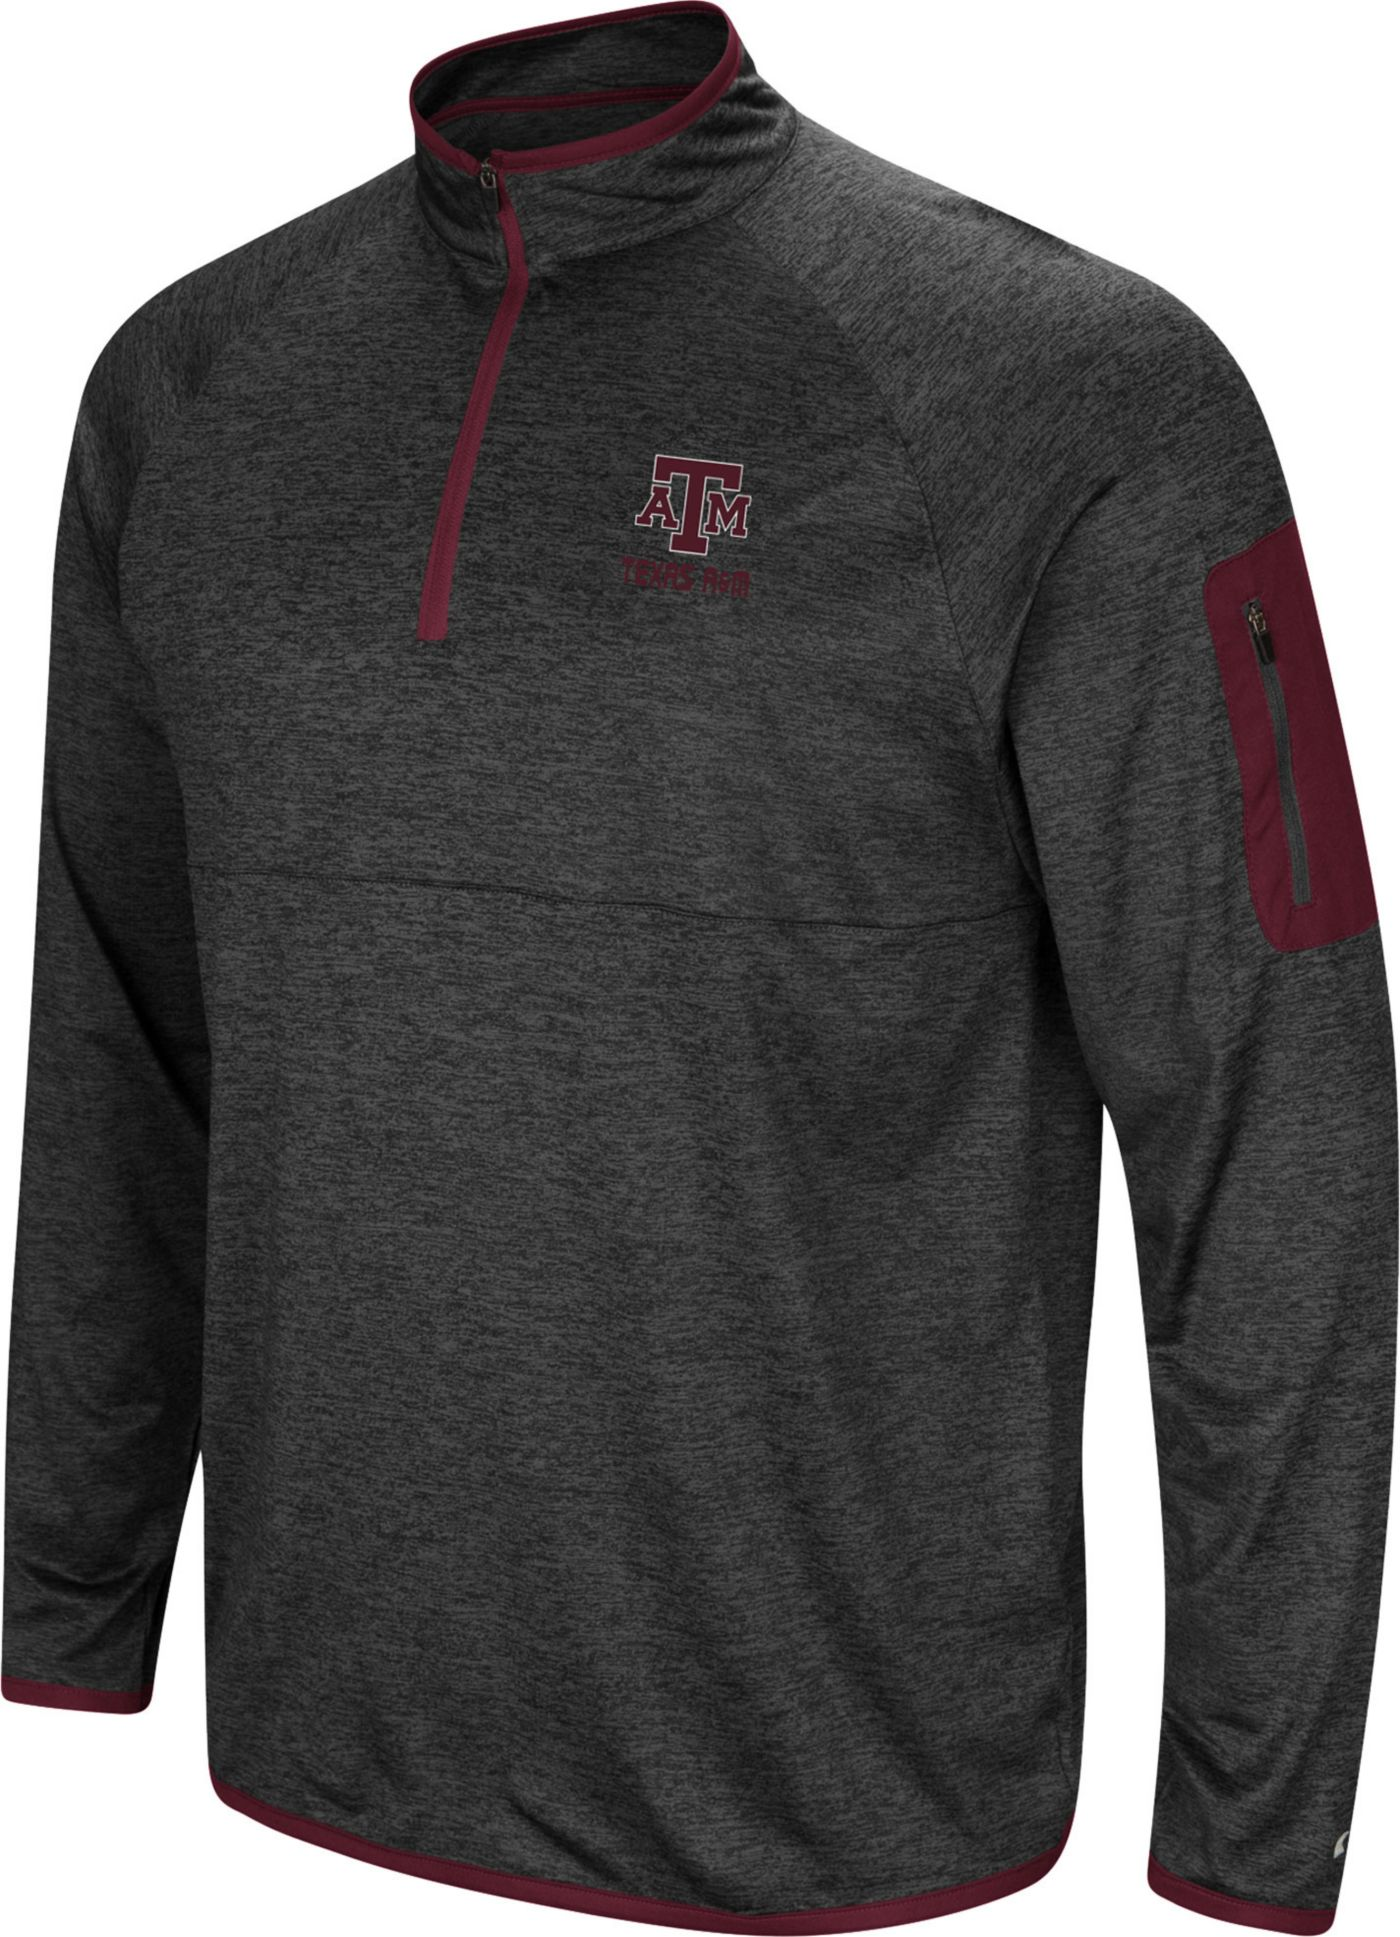 Colosseum Men's Texas A&M Aggies Indus River Quarter-Zip Black Shirt